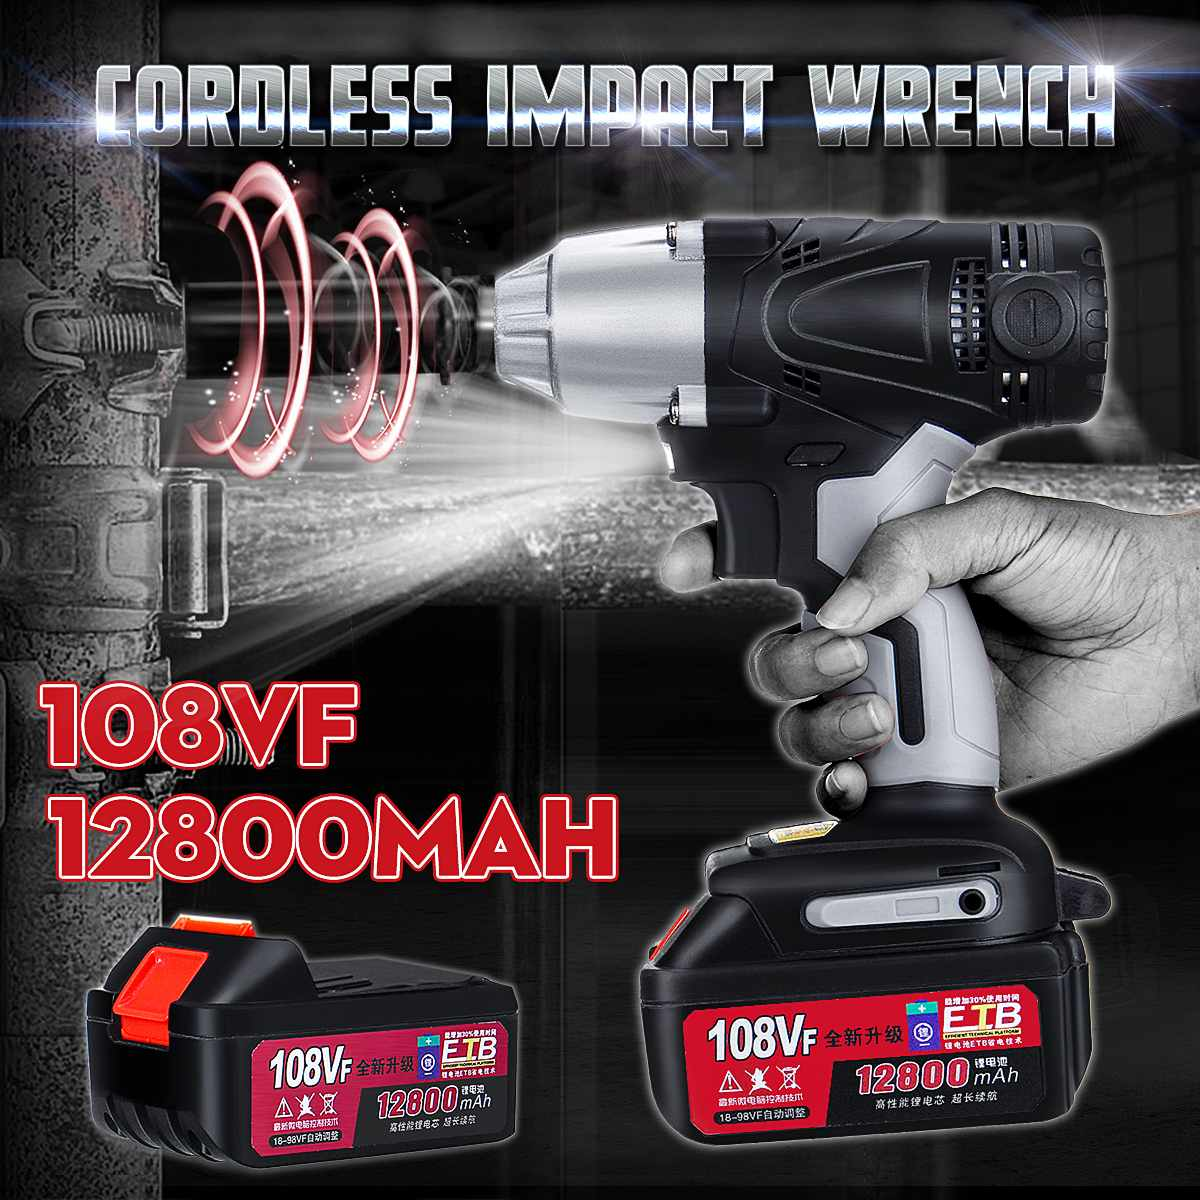 108VF 12800mAh Lithium-Ion Battery Cordless Electric Impact Wrench Drill Driver Kit108VF 12800mAh Lithium-Ion Battery Cordless Electric Impact Wrench Drill Driver Kit